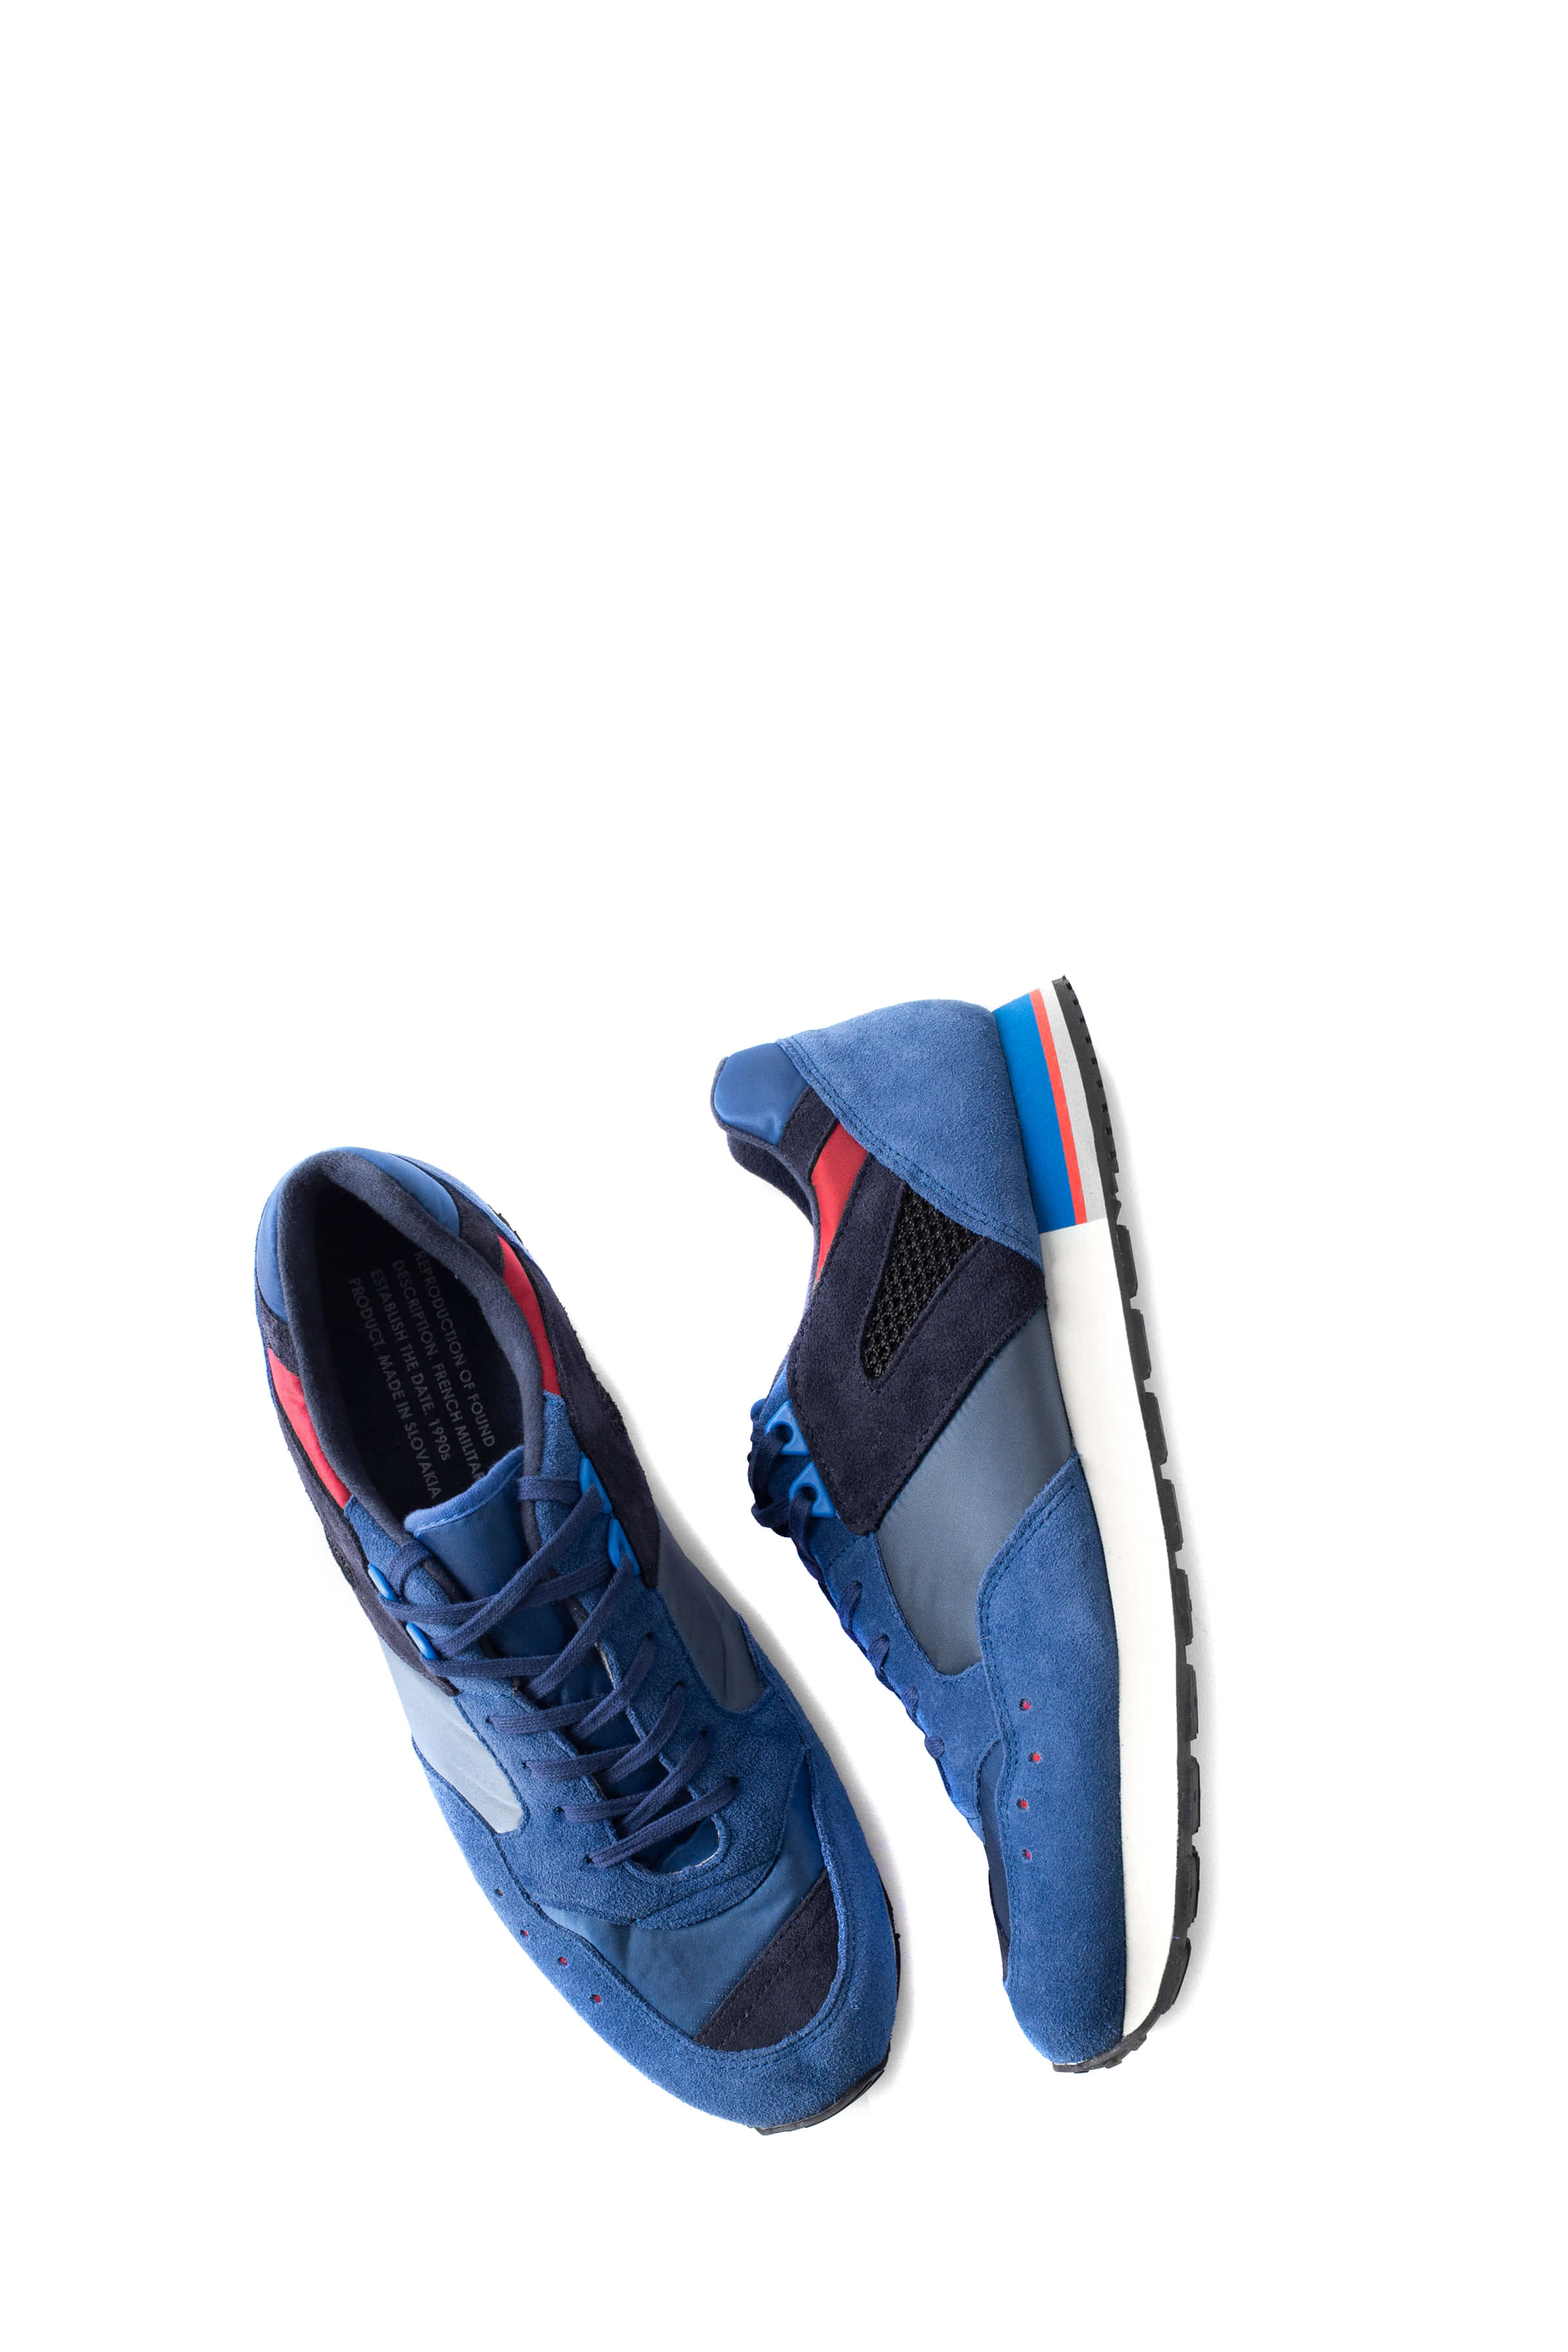 REPRODUCTION OF FOUND : French Military Trainer (Blue)